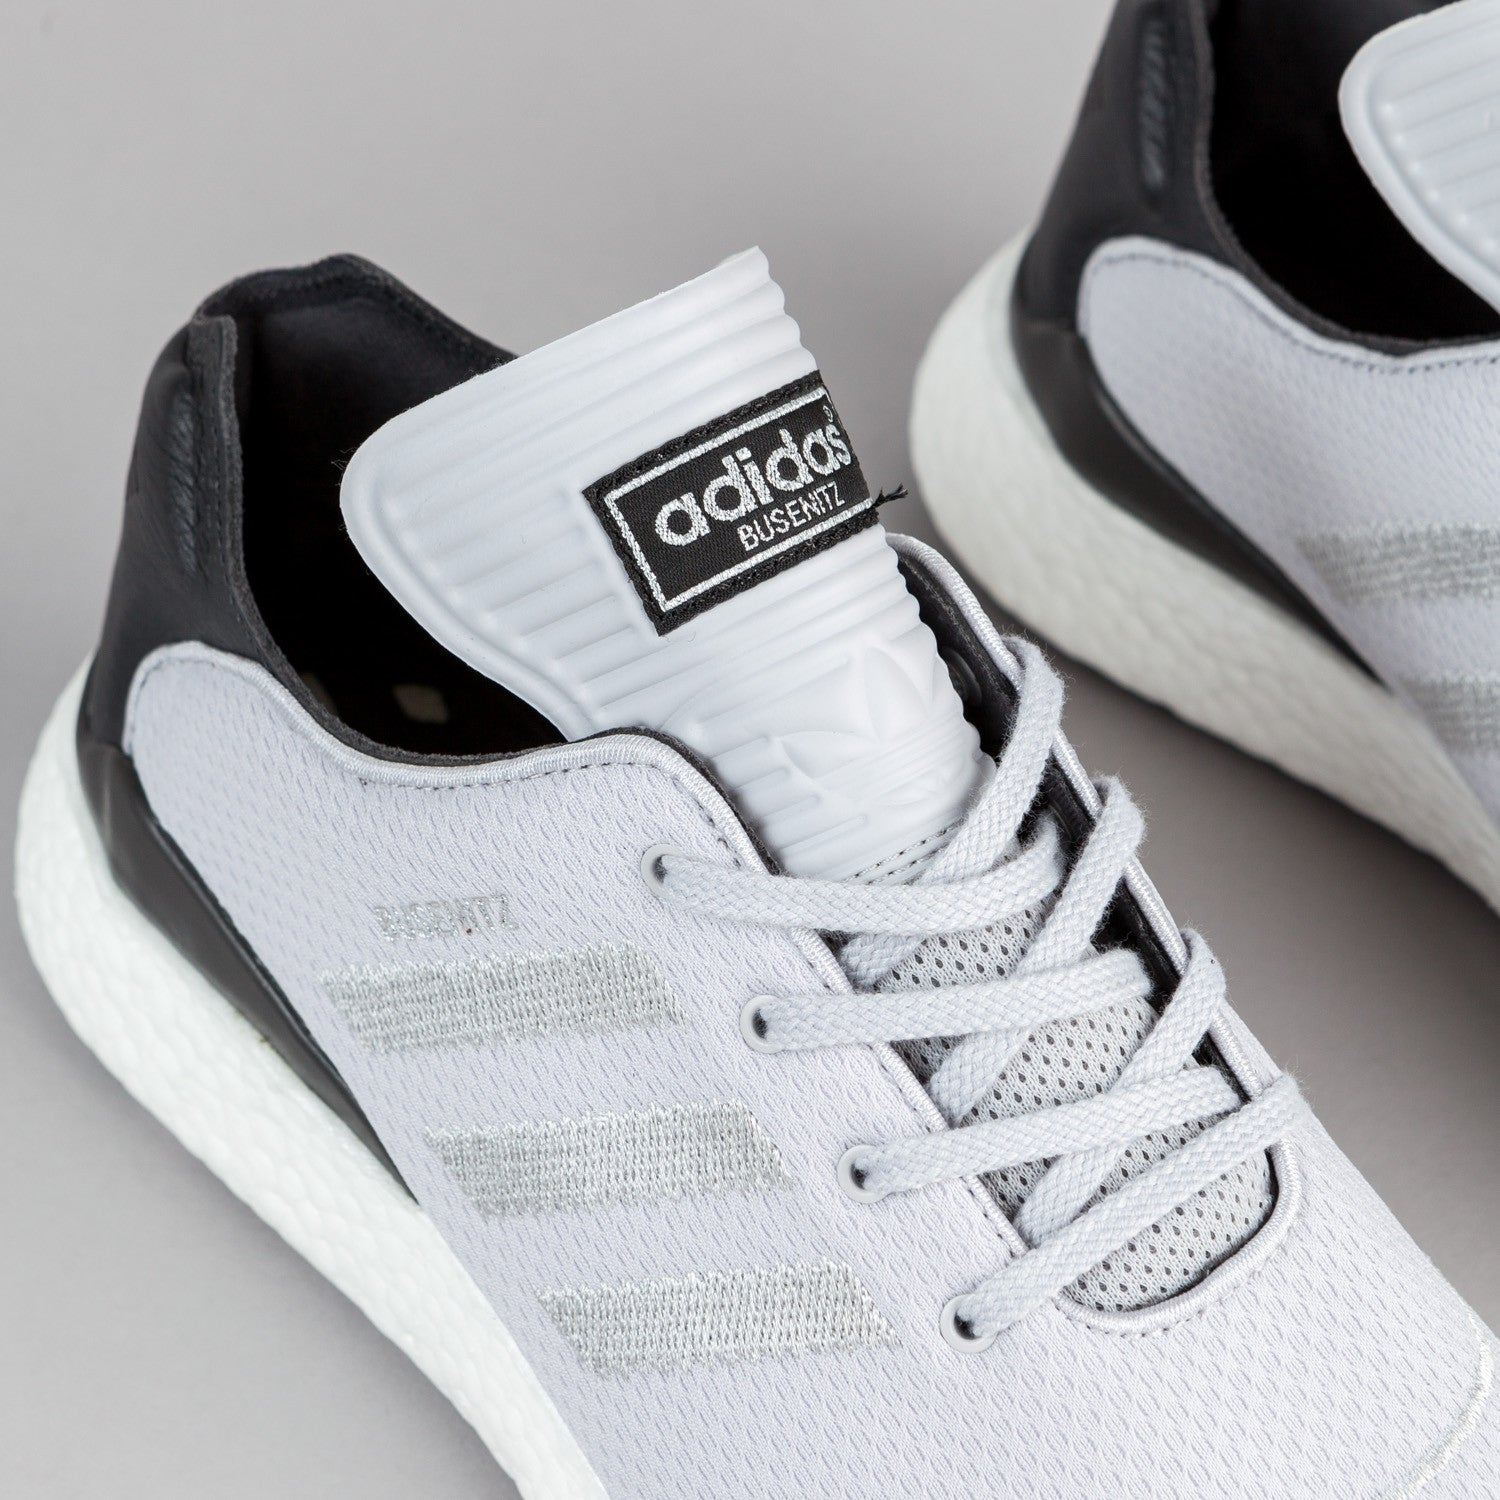 Adidas Busenitz Pure Boost Shoes - Light Grey / Dark Grey / Silver Metallic